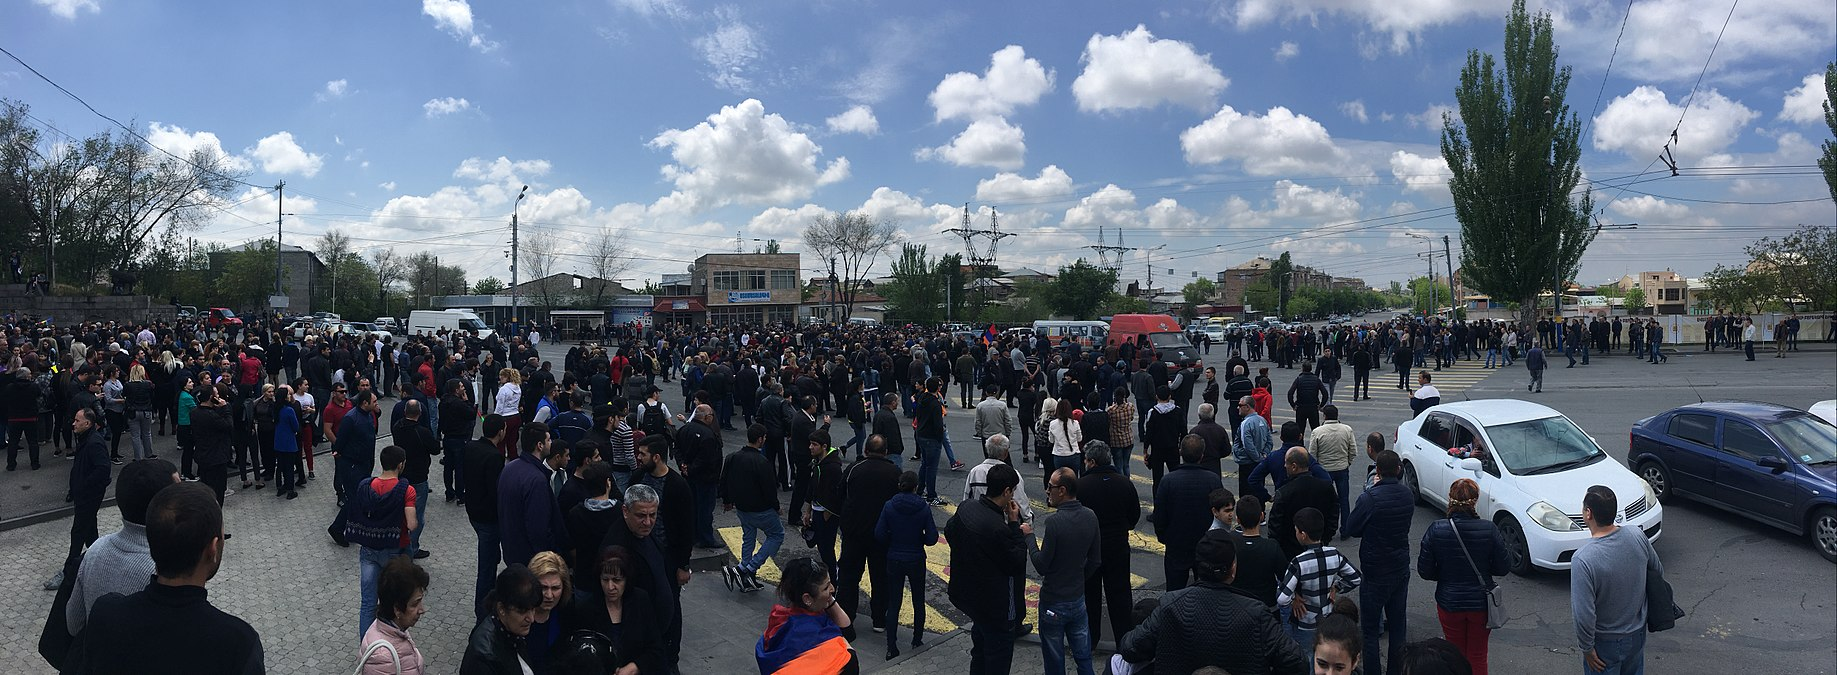 22.04.2018 Protest Demonstration, Yerevan 43.jpg